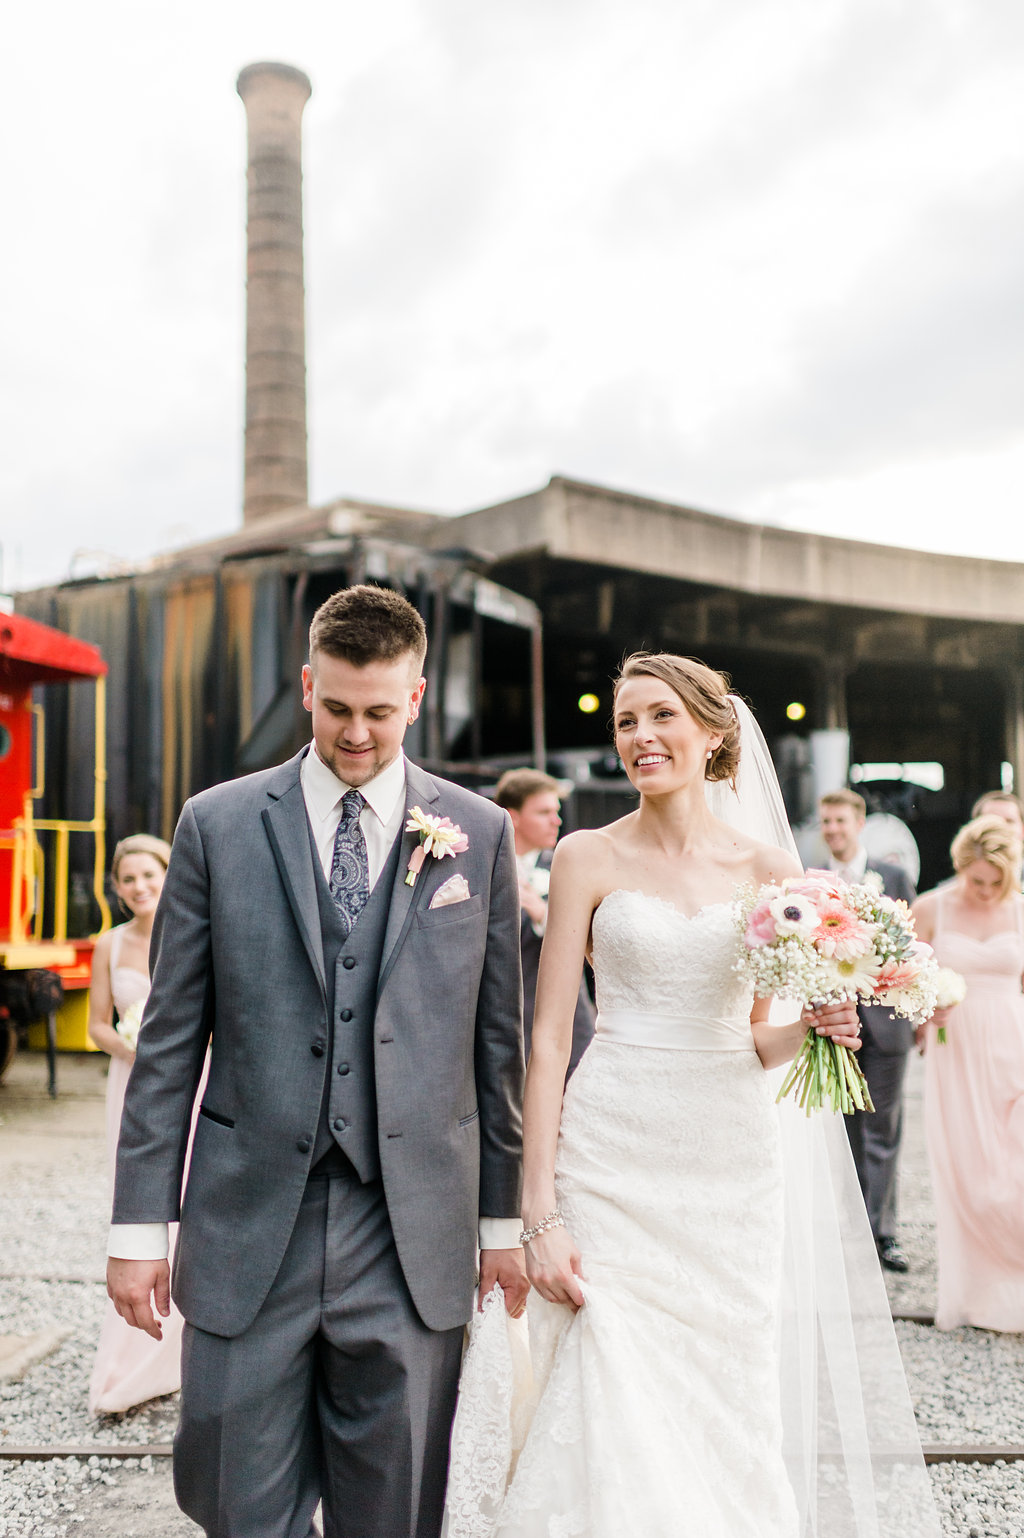 rach-lea-photography-rach-loves-troy-roundhouse-railroad-museum-wedding-ivory-and-beau-savannah-wedding-planner-savannah-weddings-savannah-florist-ivory-and-beau-bridal-boutique-succulent-blush-wedding-23.jpg